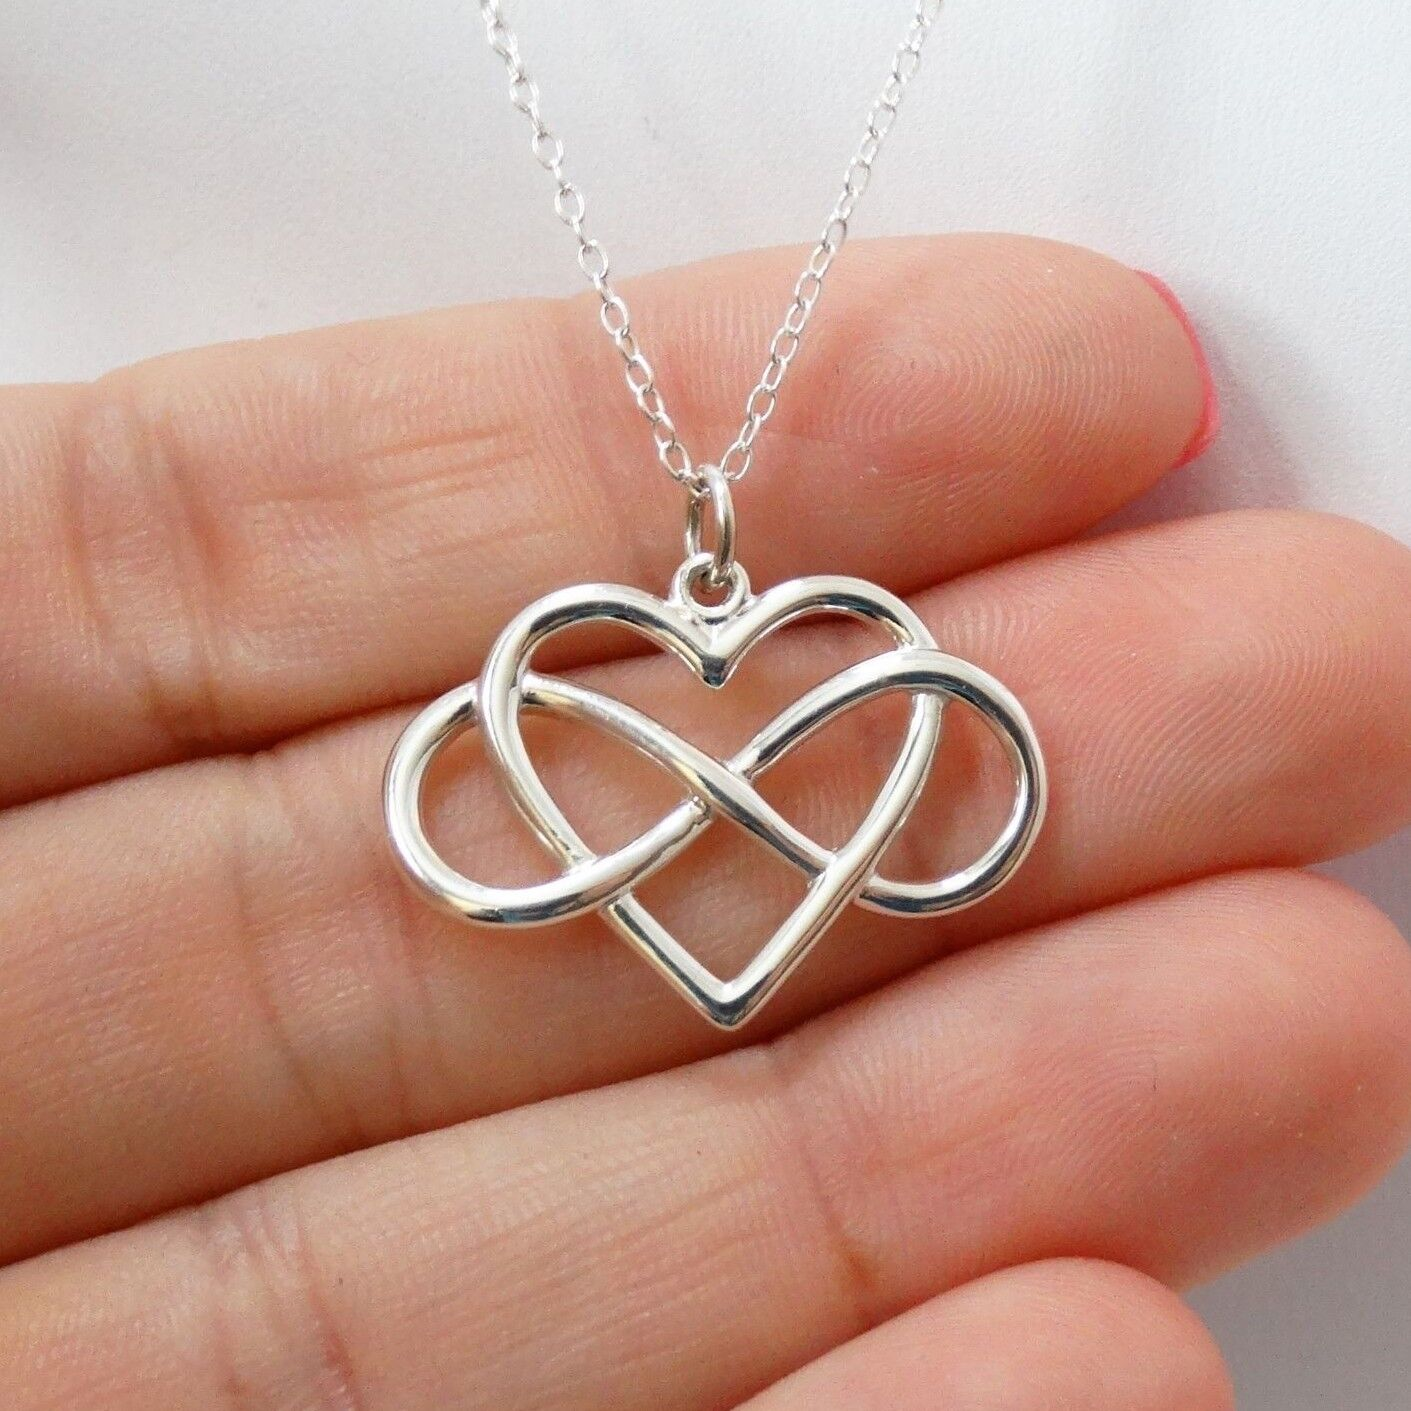 Infinity Heart Necklace - 925 Sterling Silver - Infinite